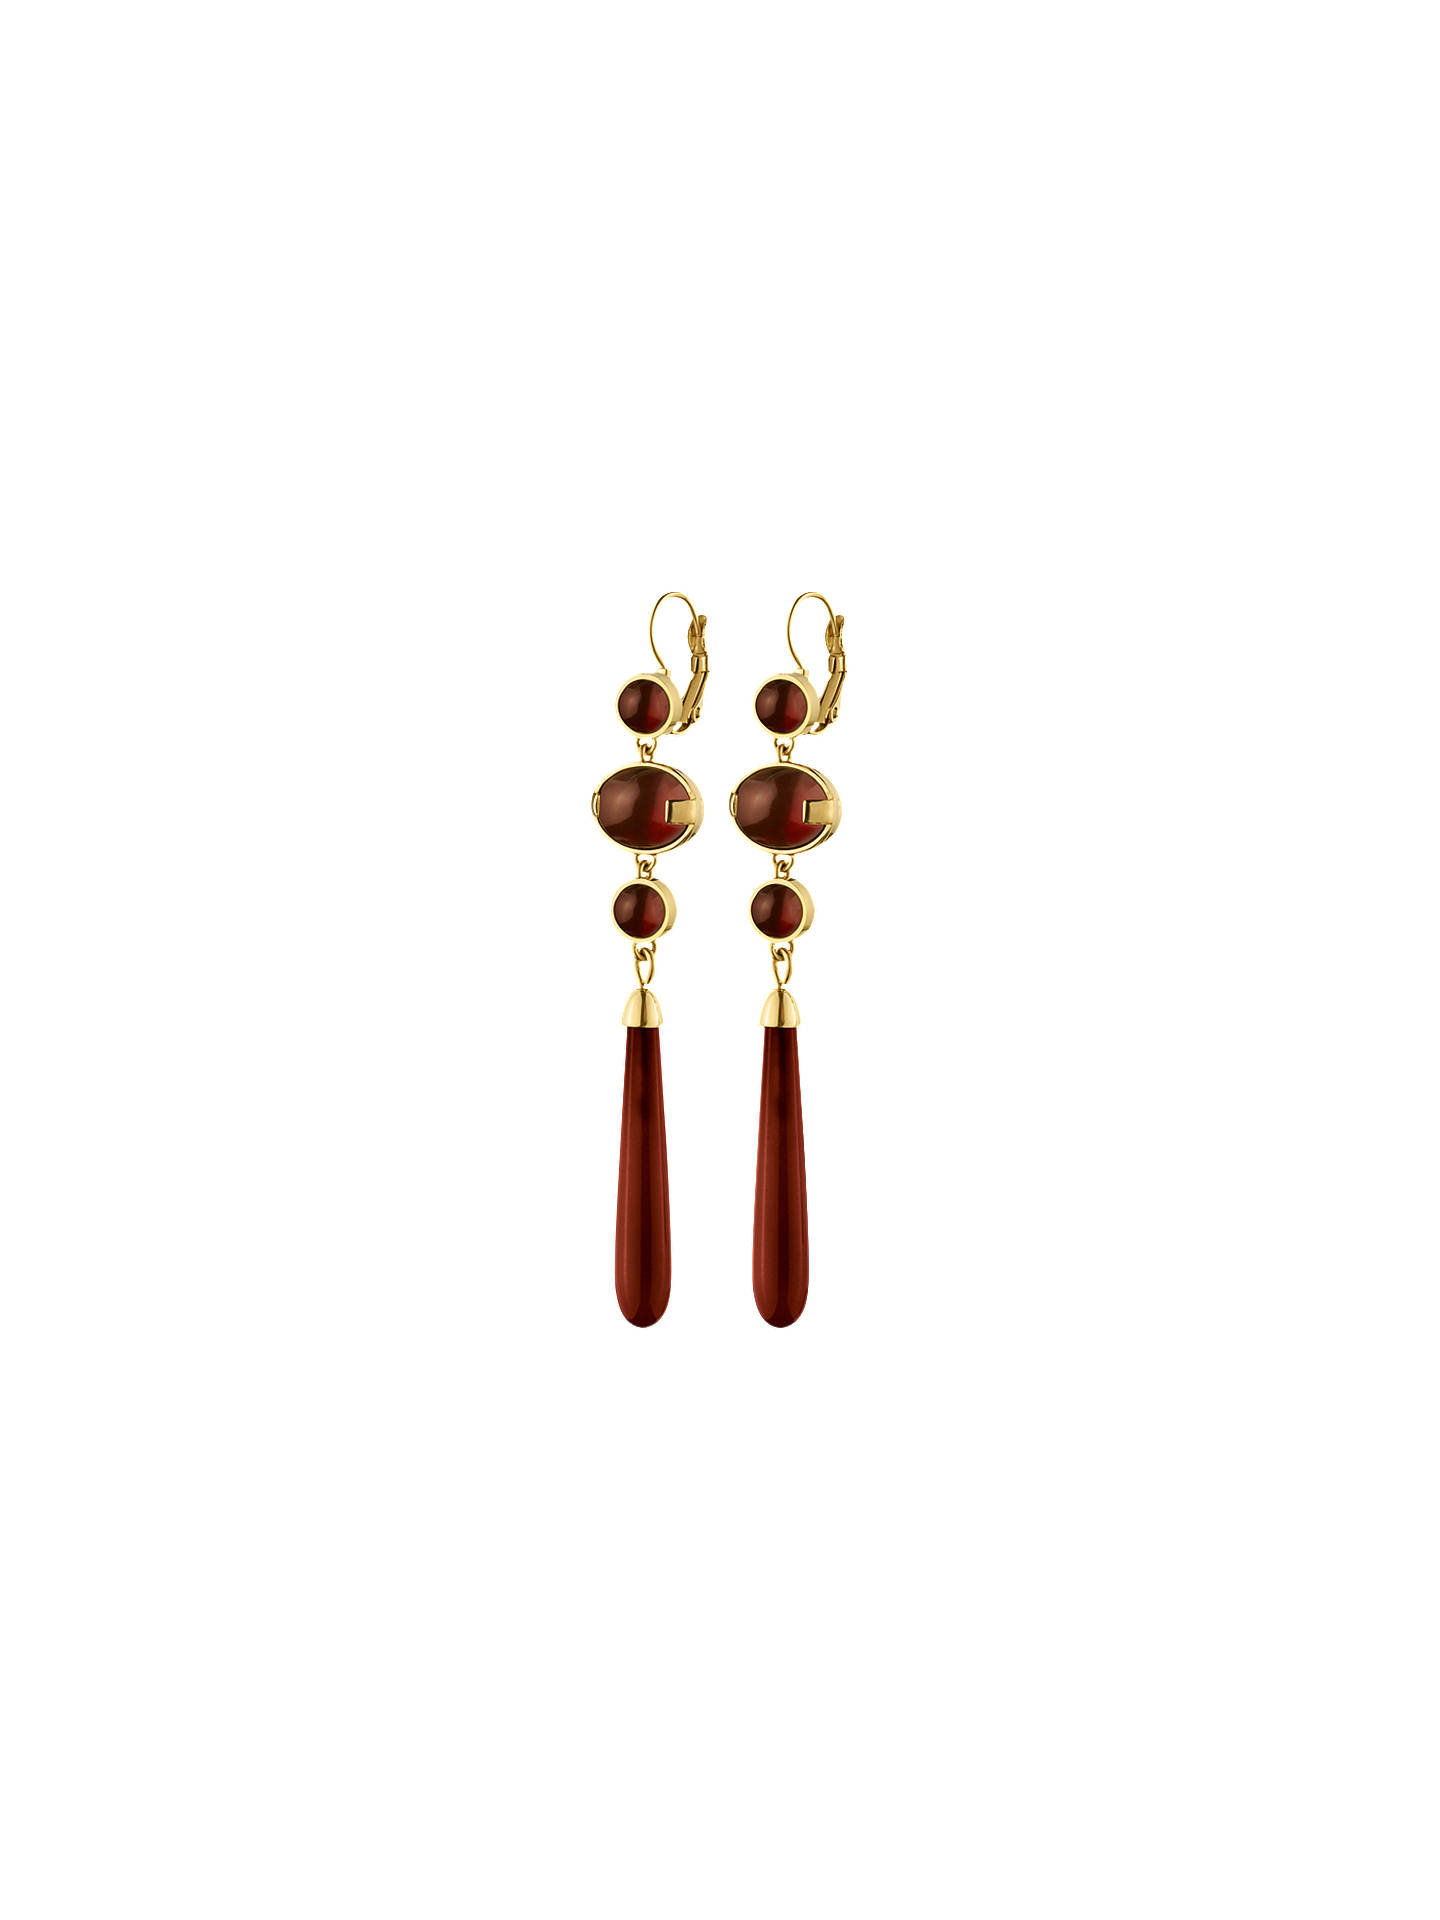 BuyDYRBERG/KERN Lindsey French Hook Earrings, Gold/Red Online at johnlewis.com